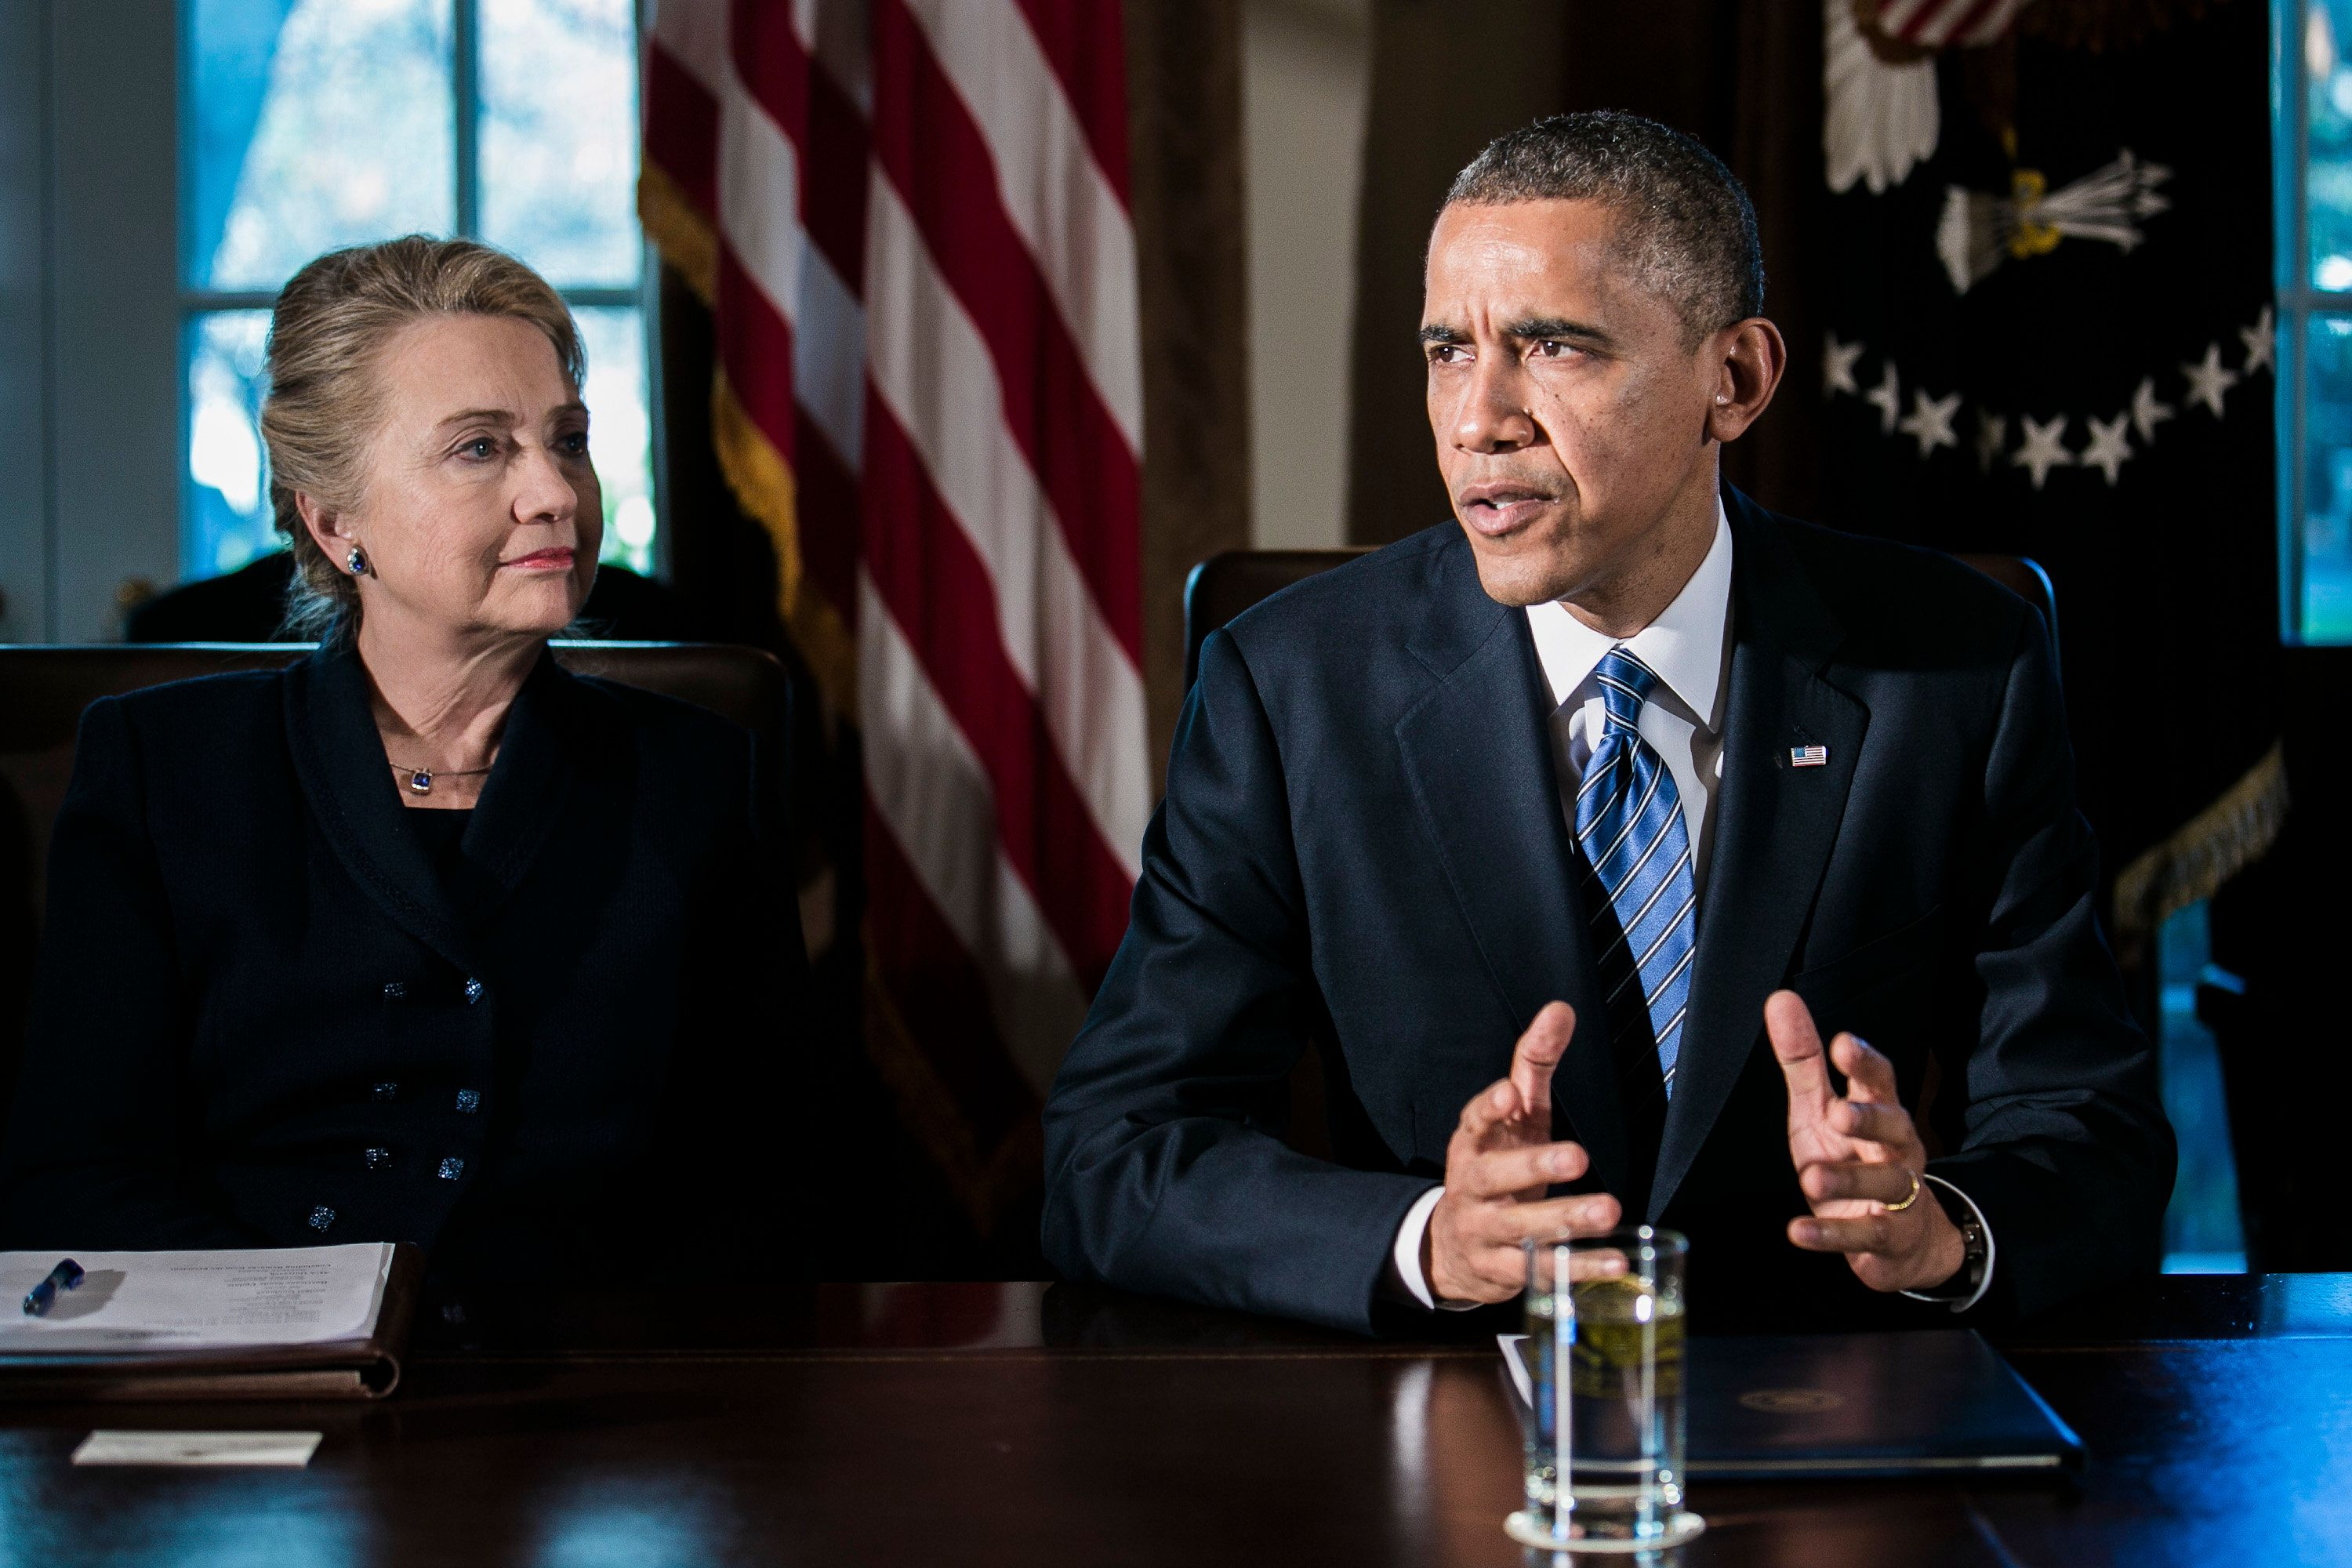 Hillary Clinton, U.S. secretary of state, left, listens while President Barack Obama speaks during a cabinet meeting at the White House in Washington, D.C., U.S., on Wednesday, Nov. 28, 2012. Business executives pressing for a solution to the so-called fiscal cliff made  their case at the White House and the Capitol a day after Senate Majority Leader Harry Reid lamented the lack of progress toward a deal. Photographer: T.J. Kirkpatrick/Bloomberg via Getty Images